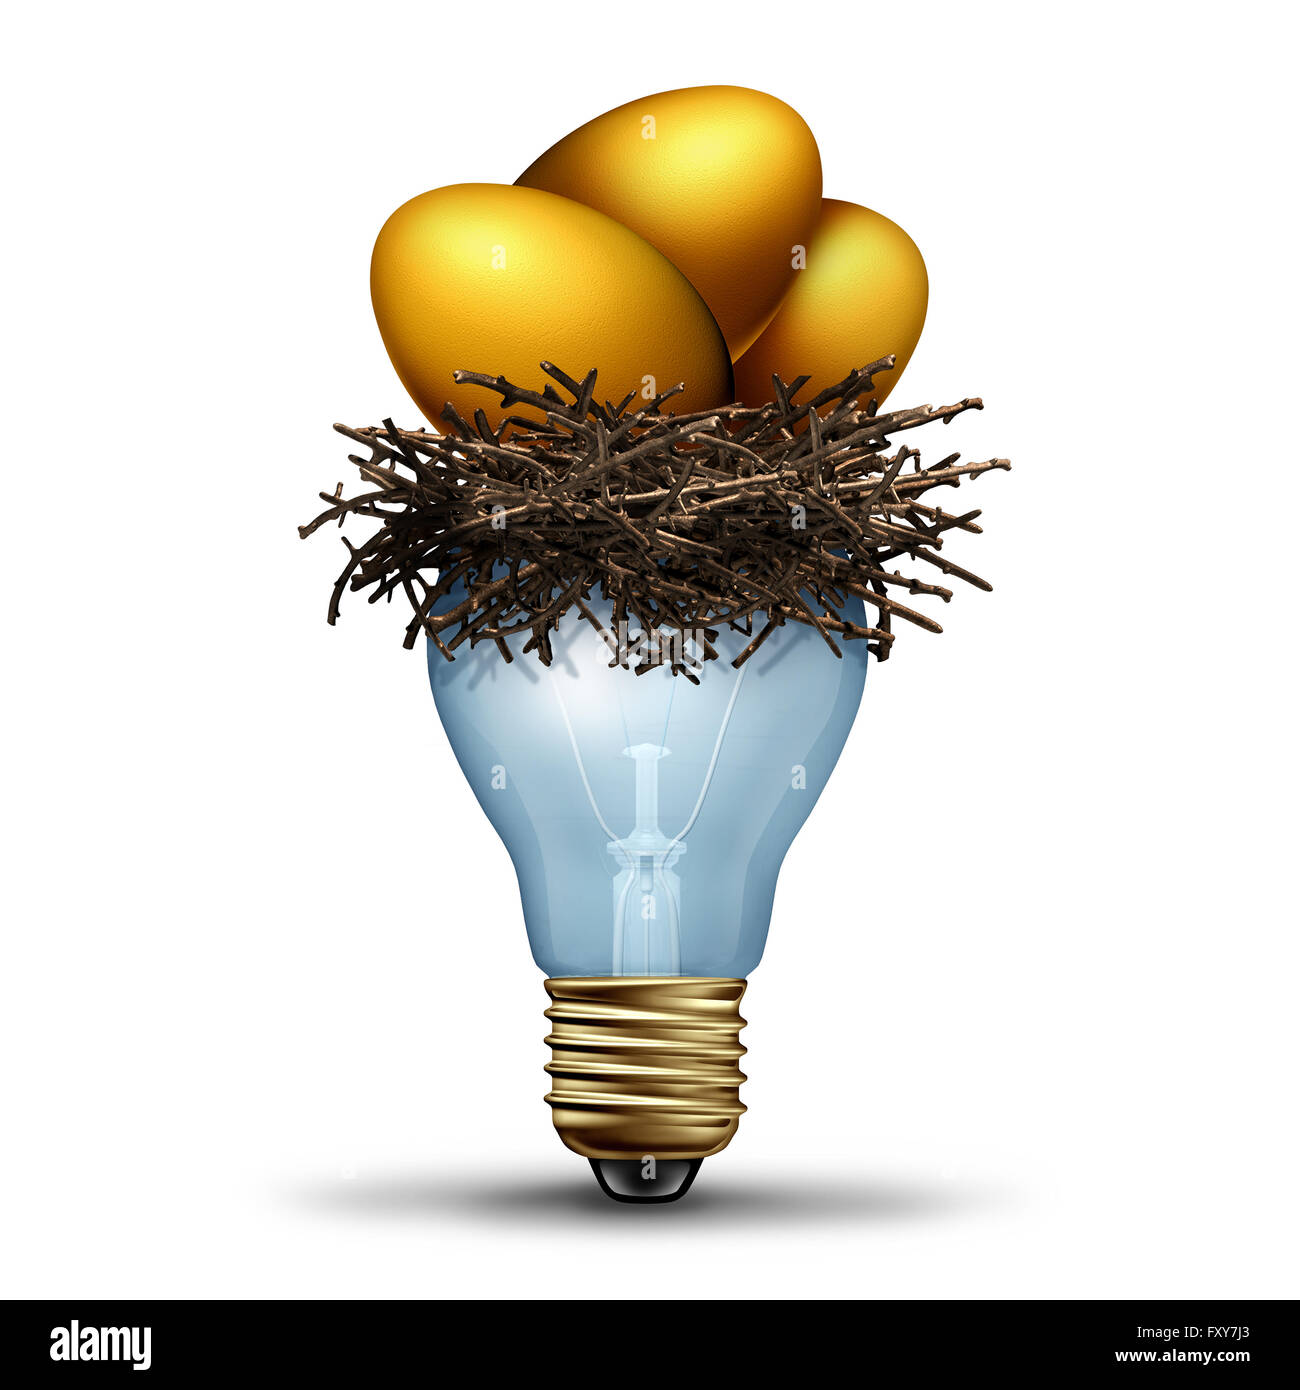 Retirement savings idea as a financial concept for finance planning as a golden nest egg  resting in a light bilb - Stock Image